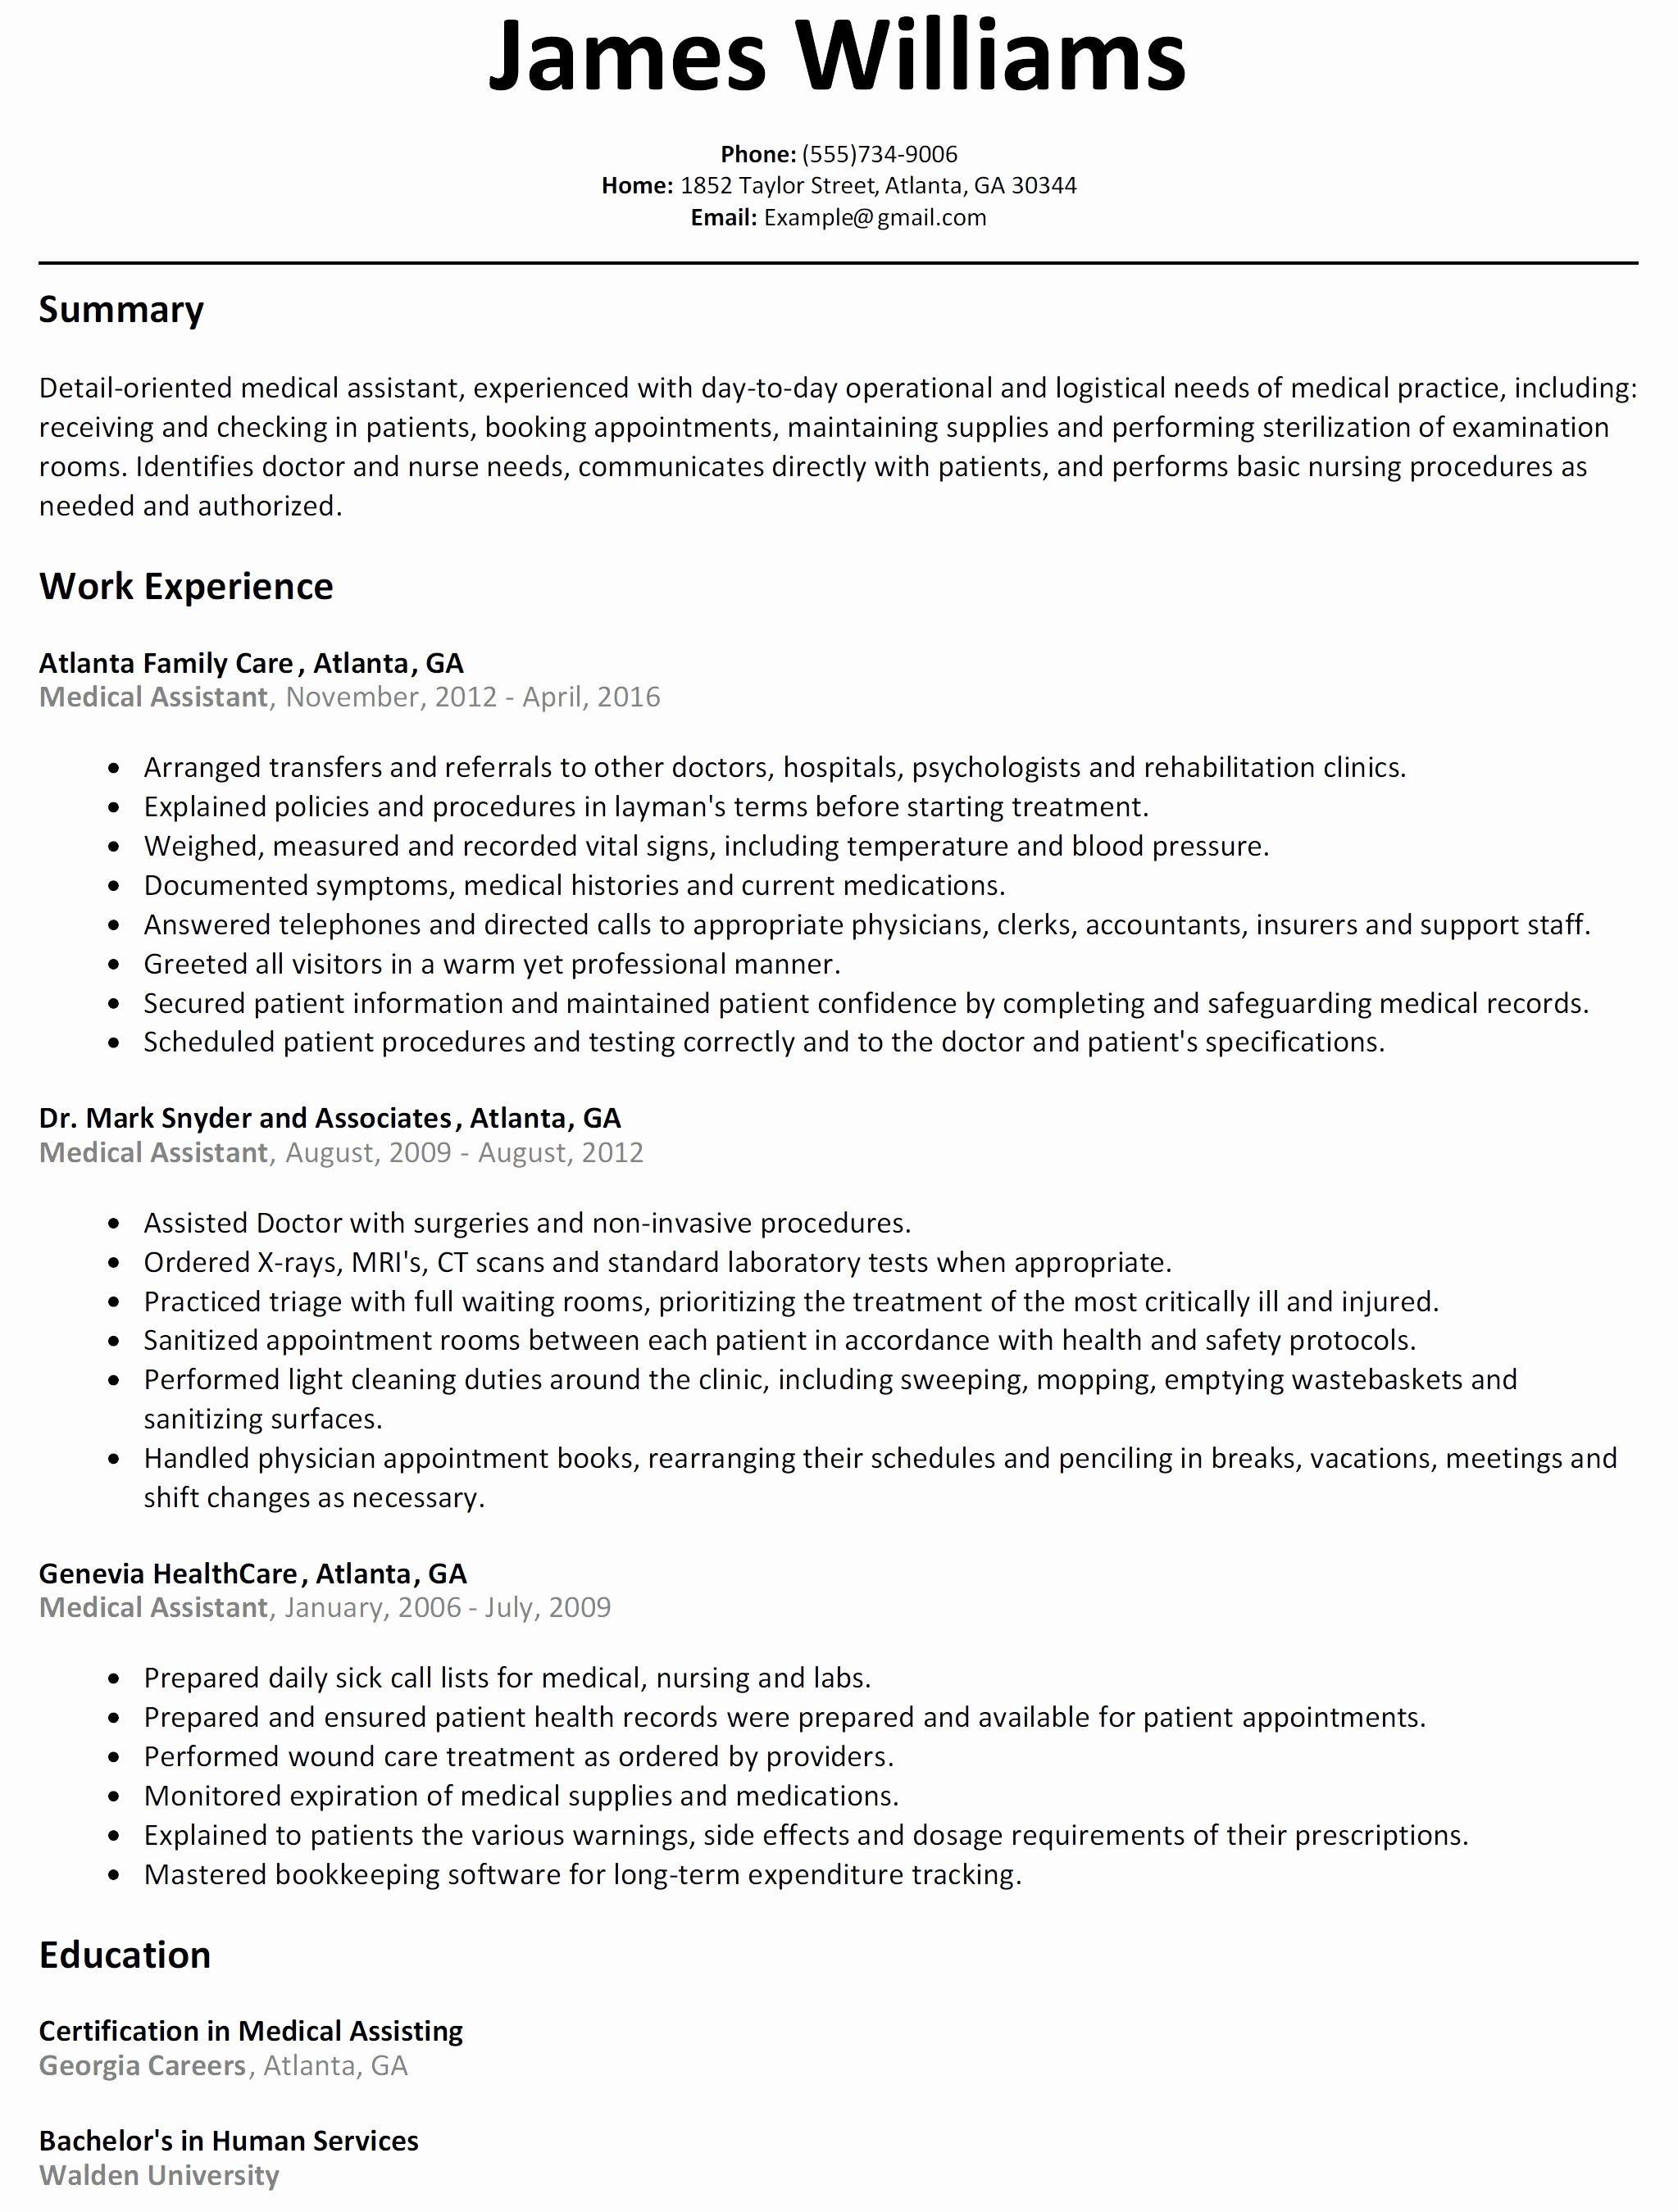 Ceo Resume Template Word - Resume Template Free Word Beautiful Best Resume Templates Word New